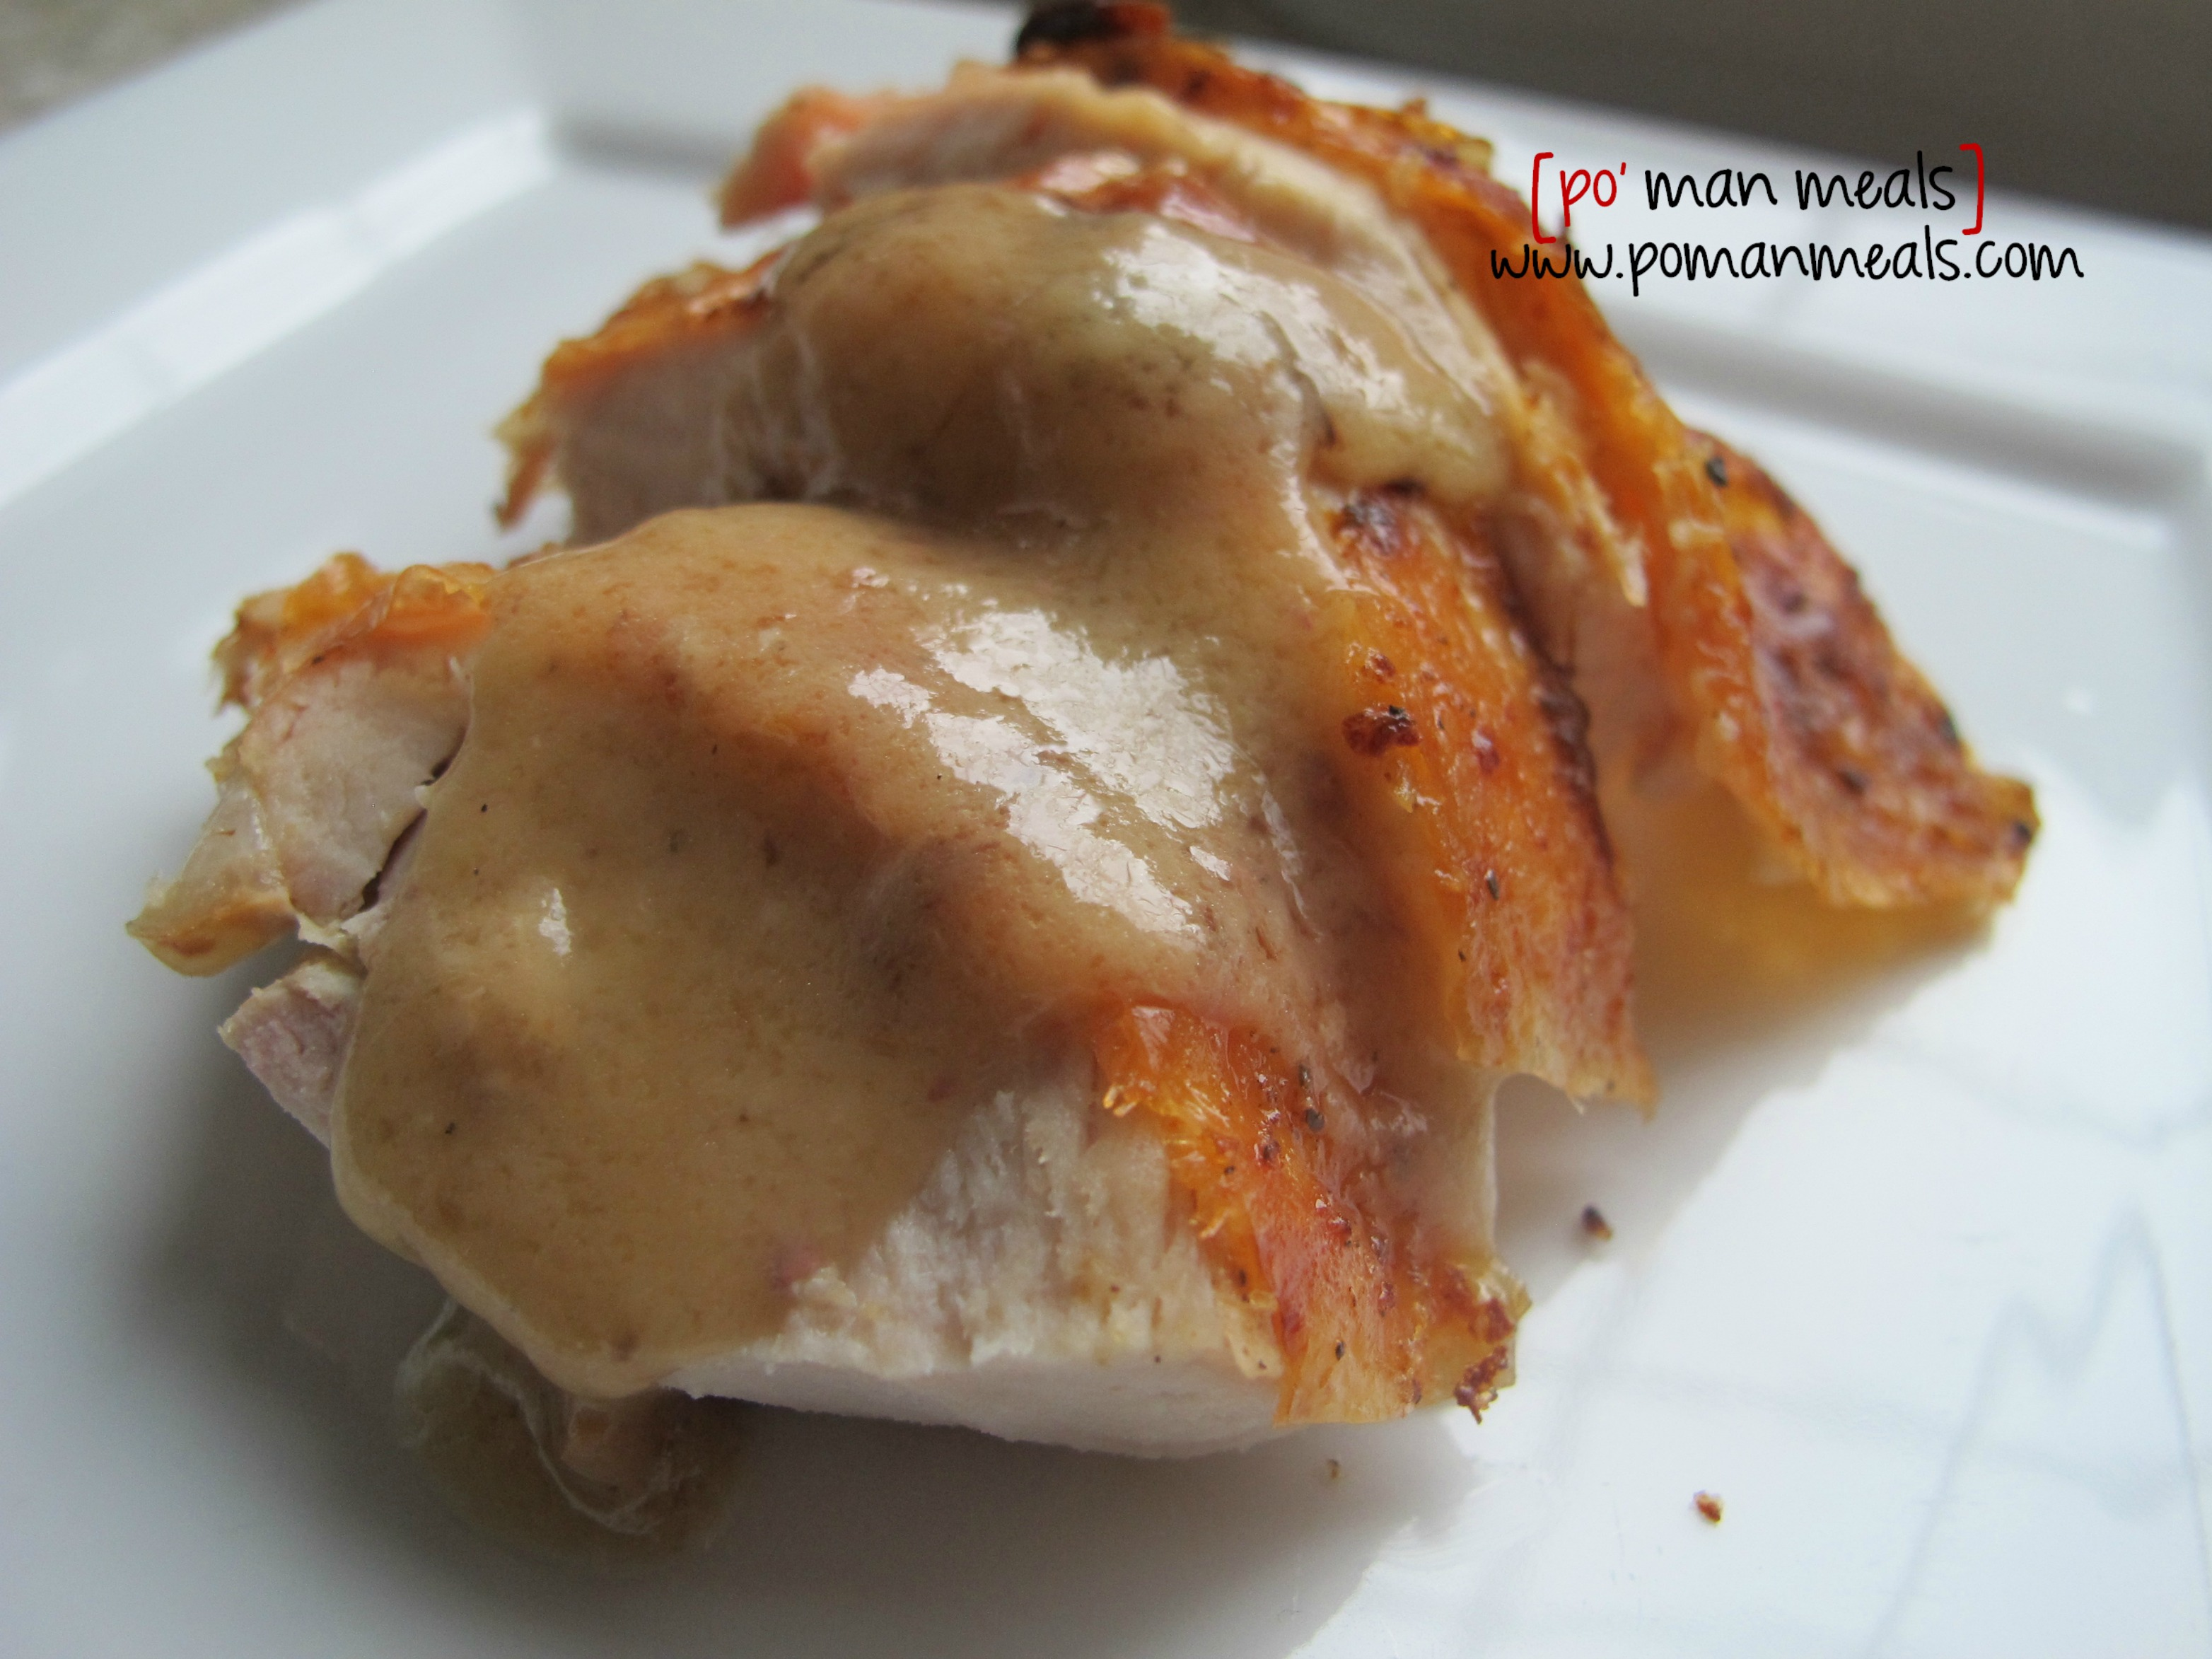 po' man meals - roasted garlic butter turkey w/gravy